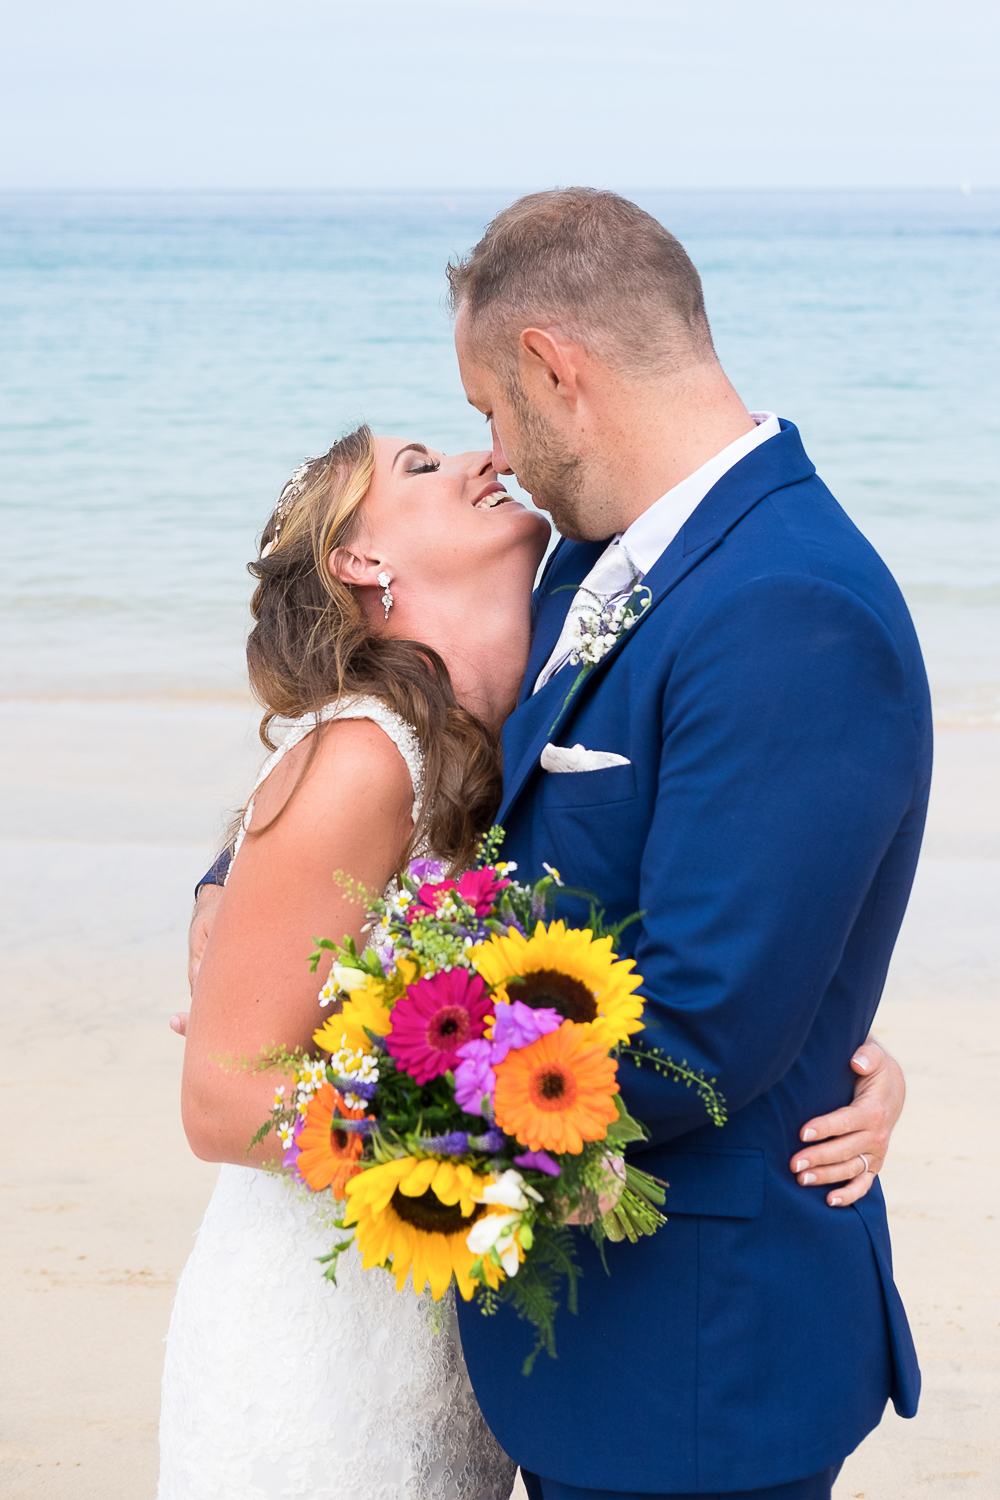 Bride and groom about to kiss on the beach in St Ives in Cornwall